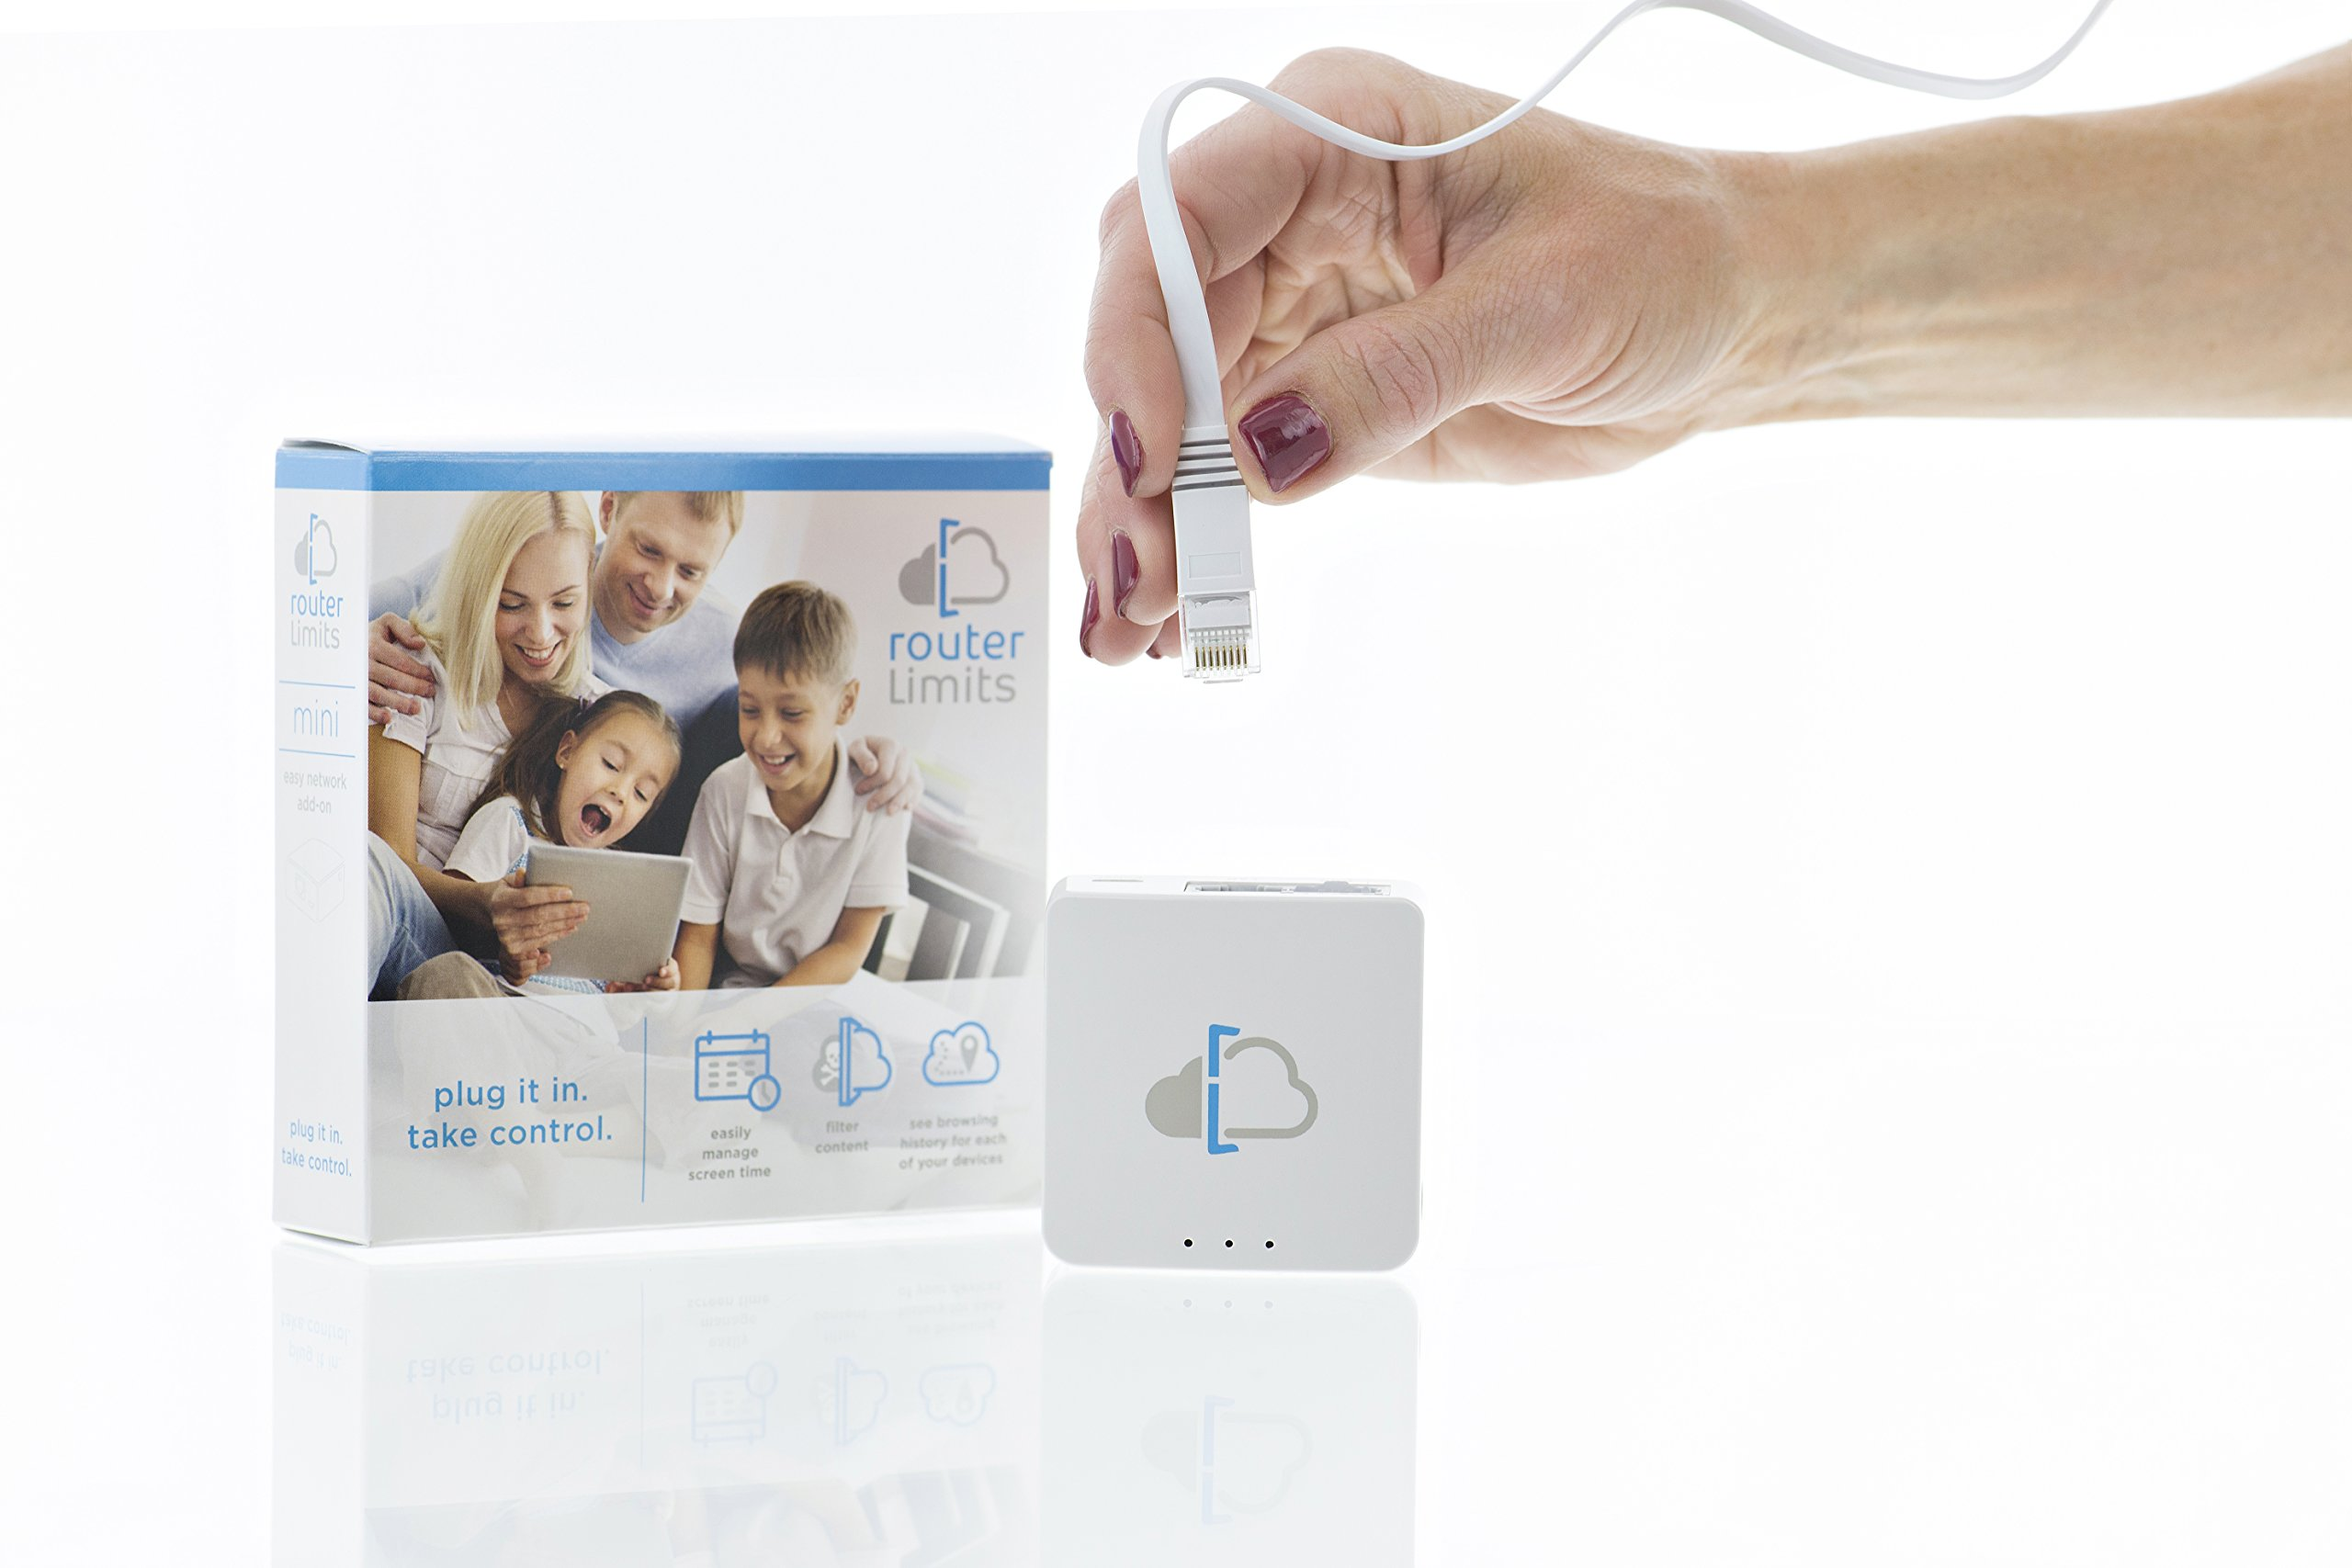 Router Limits cloud-based parental controls for internet safety from harmful content and managing screen time (Mini)